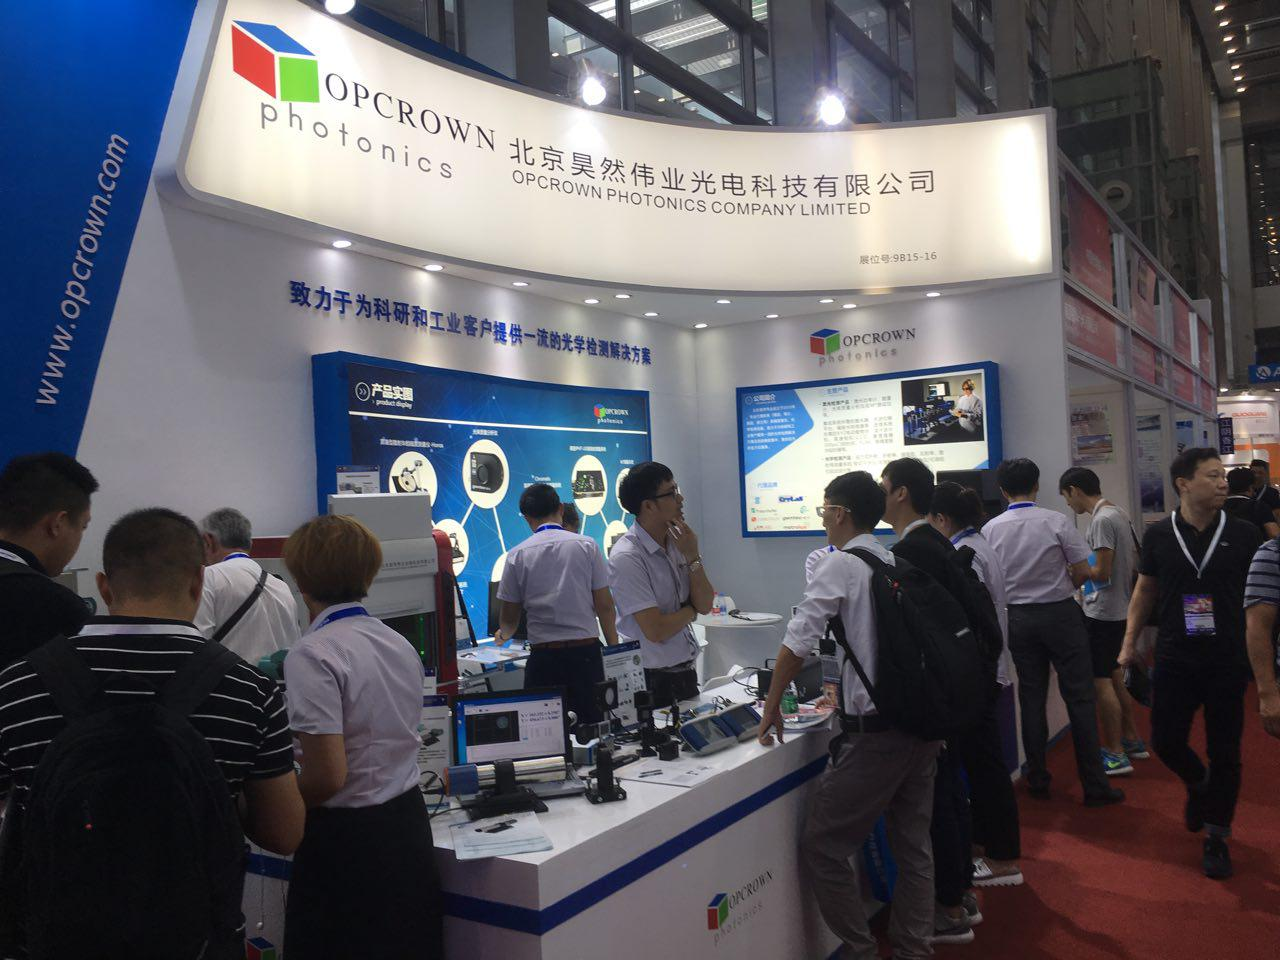 Visit our distributor OPCROWN PHOTONICS COMPANY LIMITED at CIOE 2018 in Shenzhen